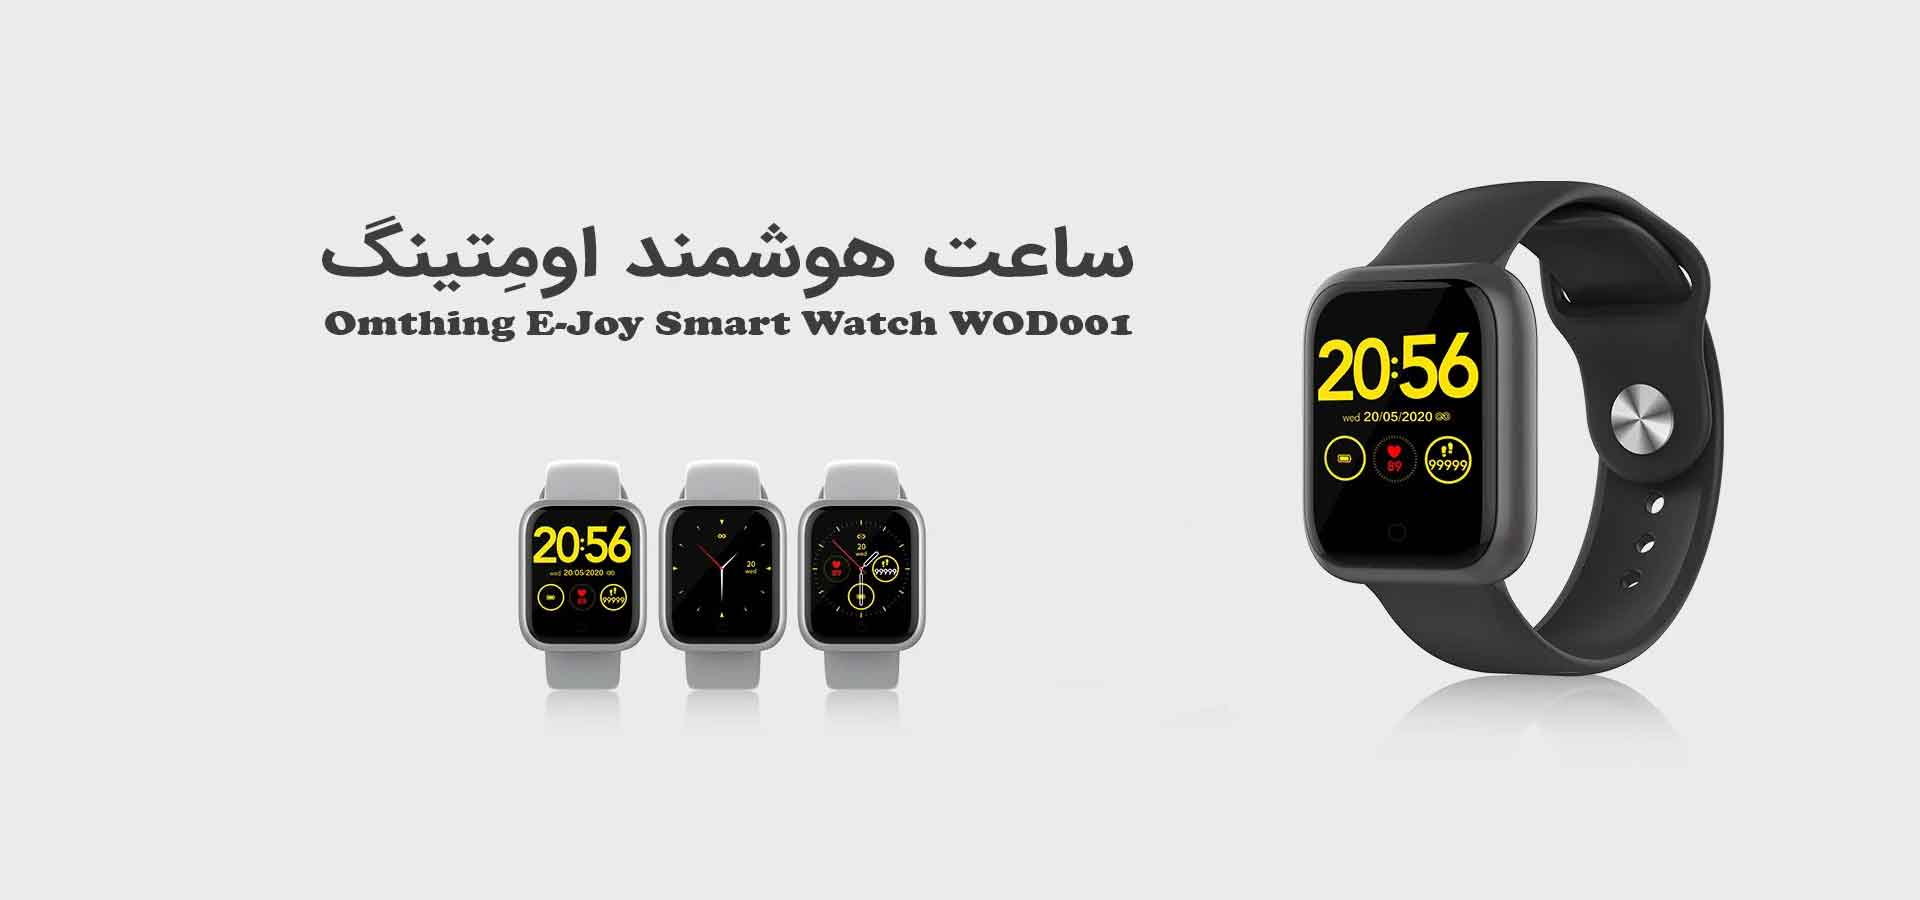 omthing smart watch